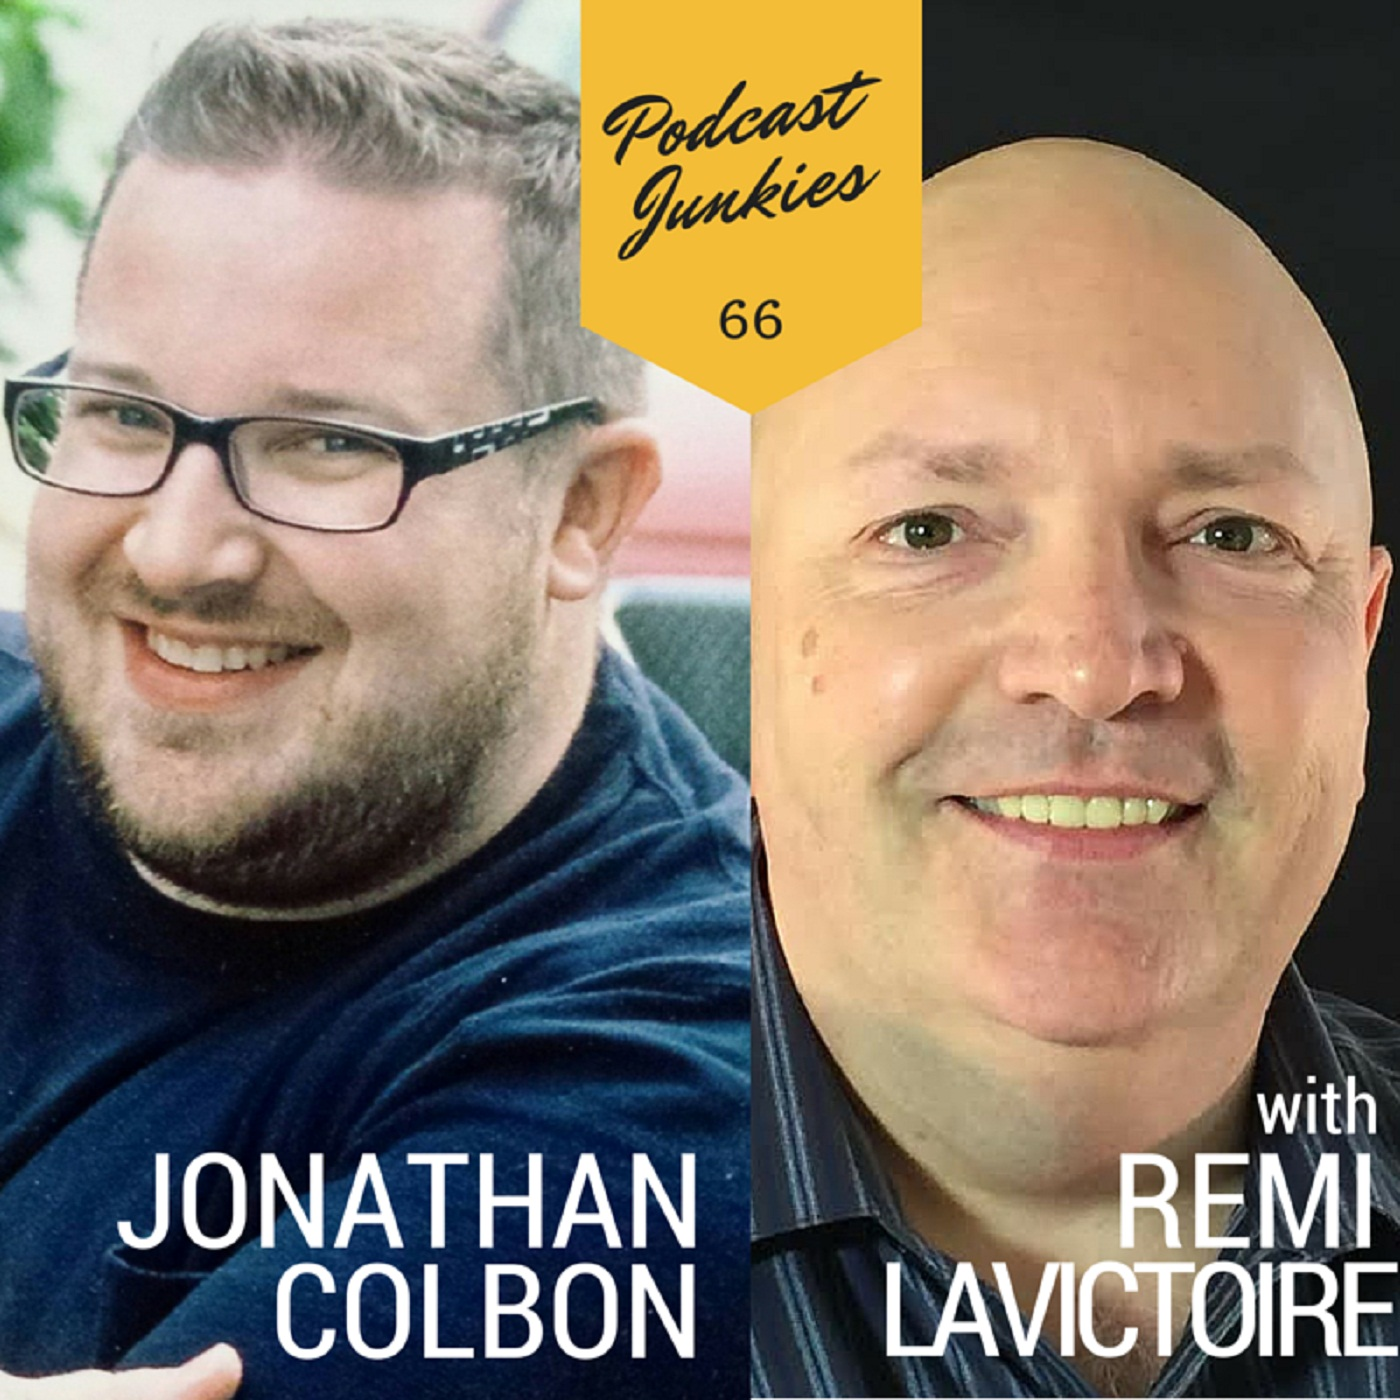 066 Remi Lavictoire & Jonathan Colban | A Passion For Science Fiction Unites Them